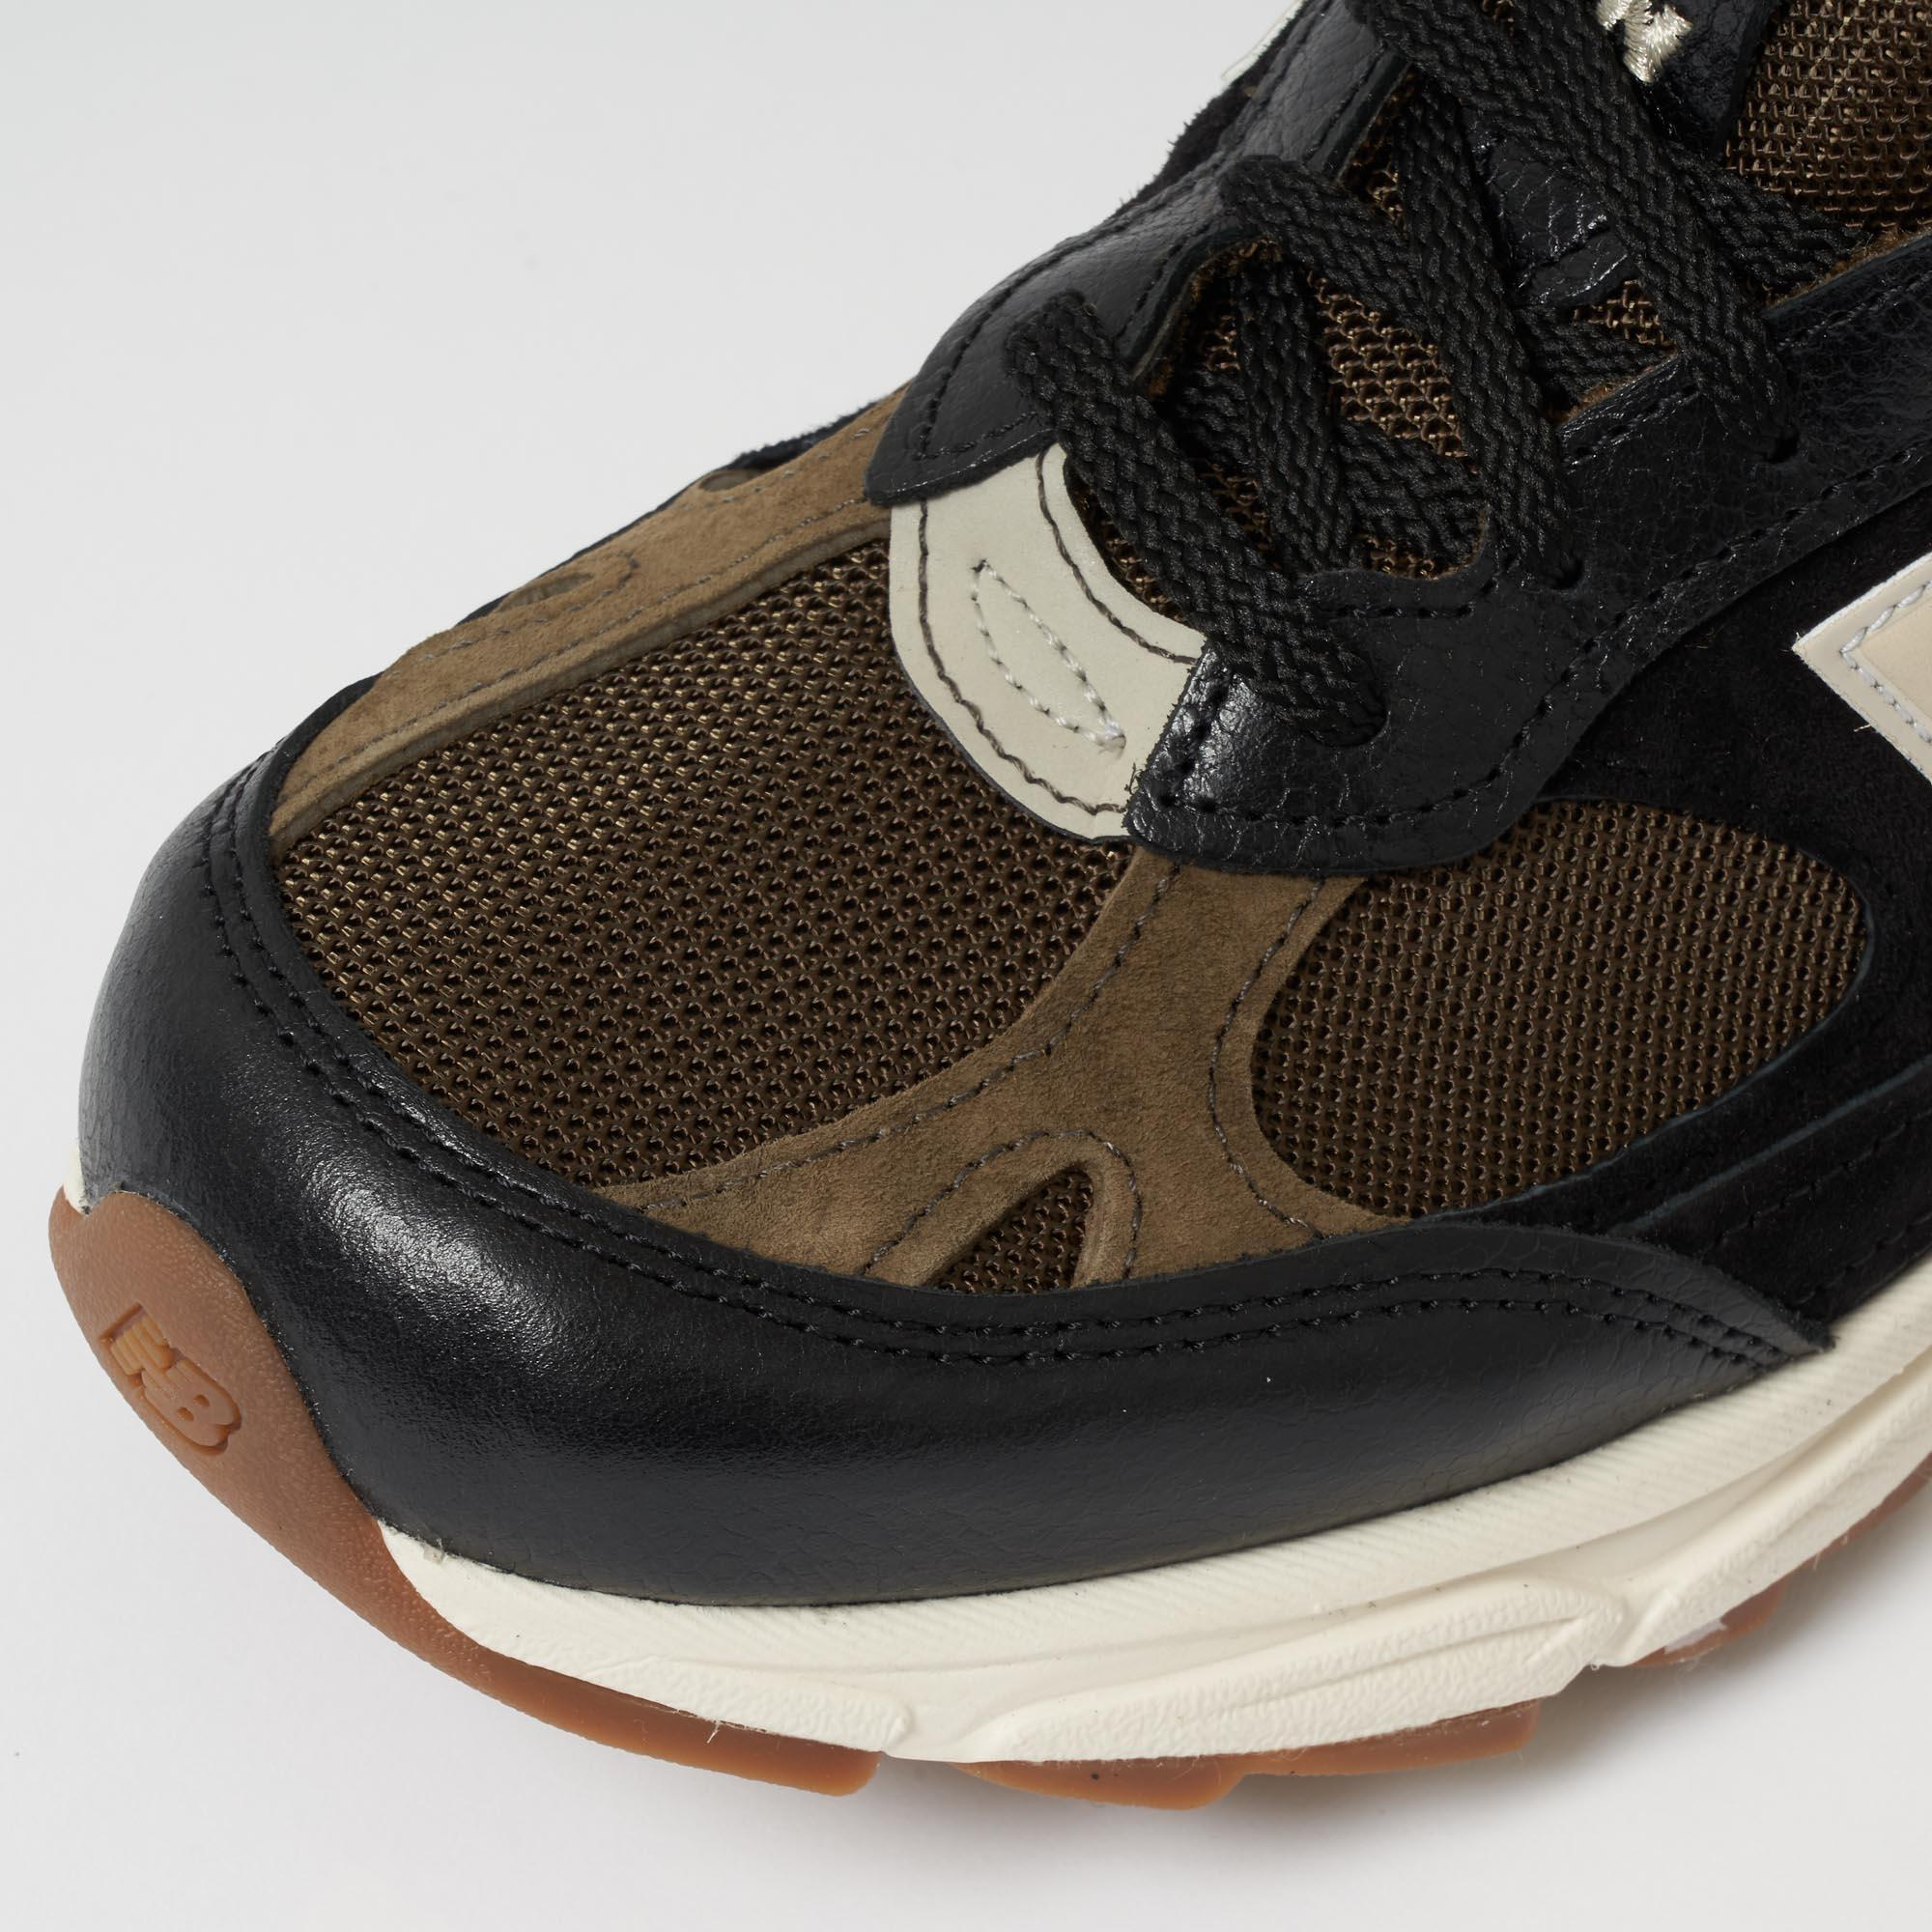 super popular 81bfe 05f78 New Balance M991.9 Made In England - Black & Olive in Brown for Men ...